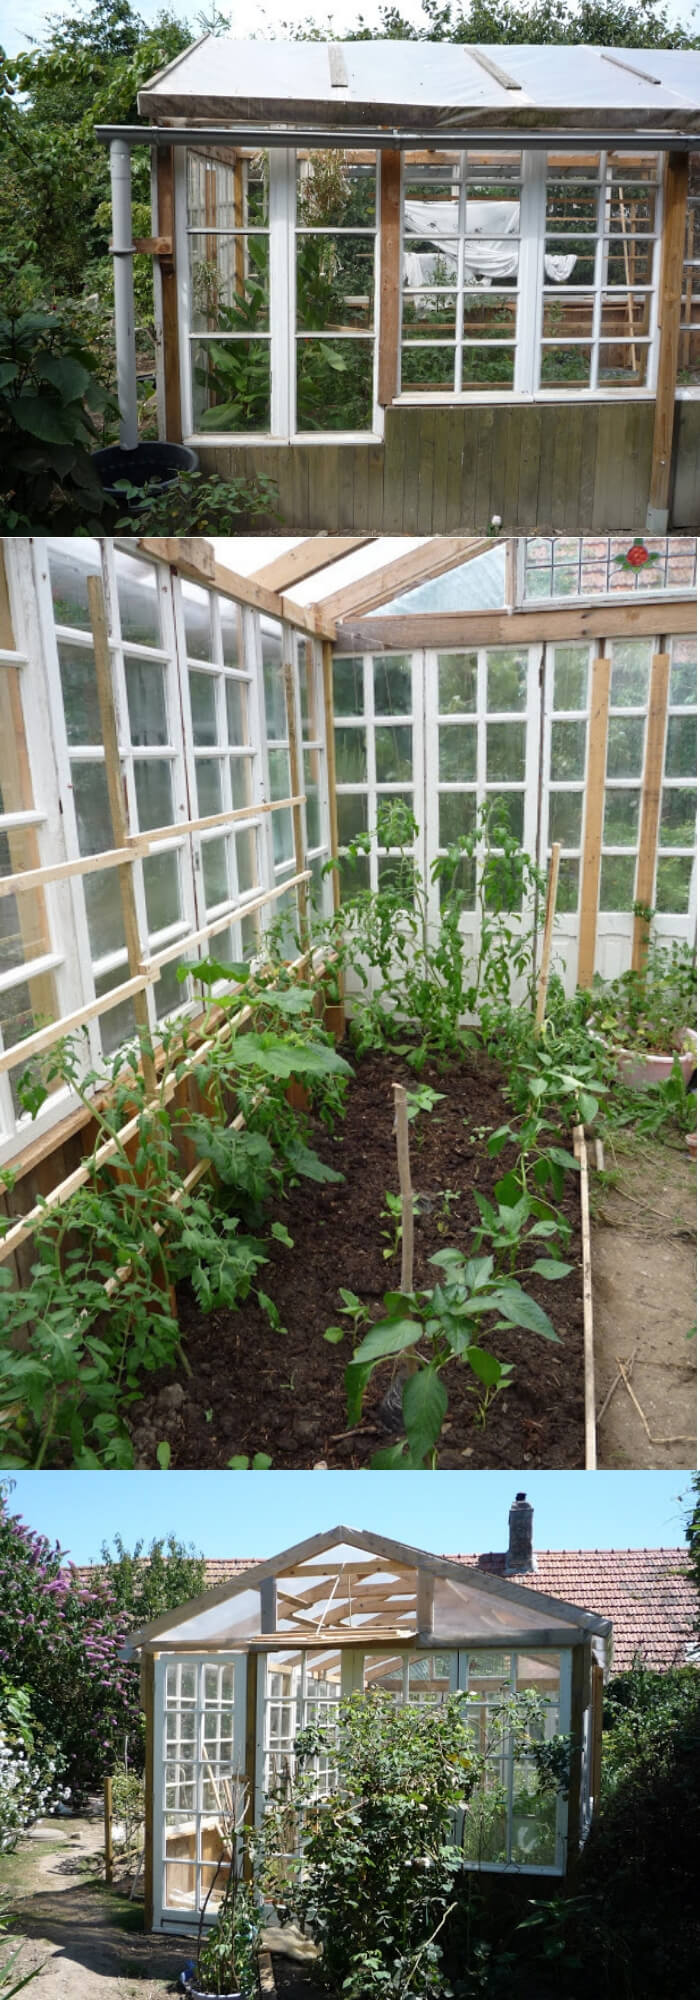 Low cost glass greenhouse from free recuperated windows